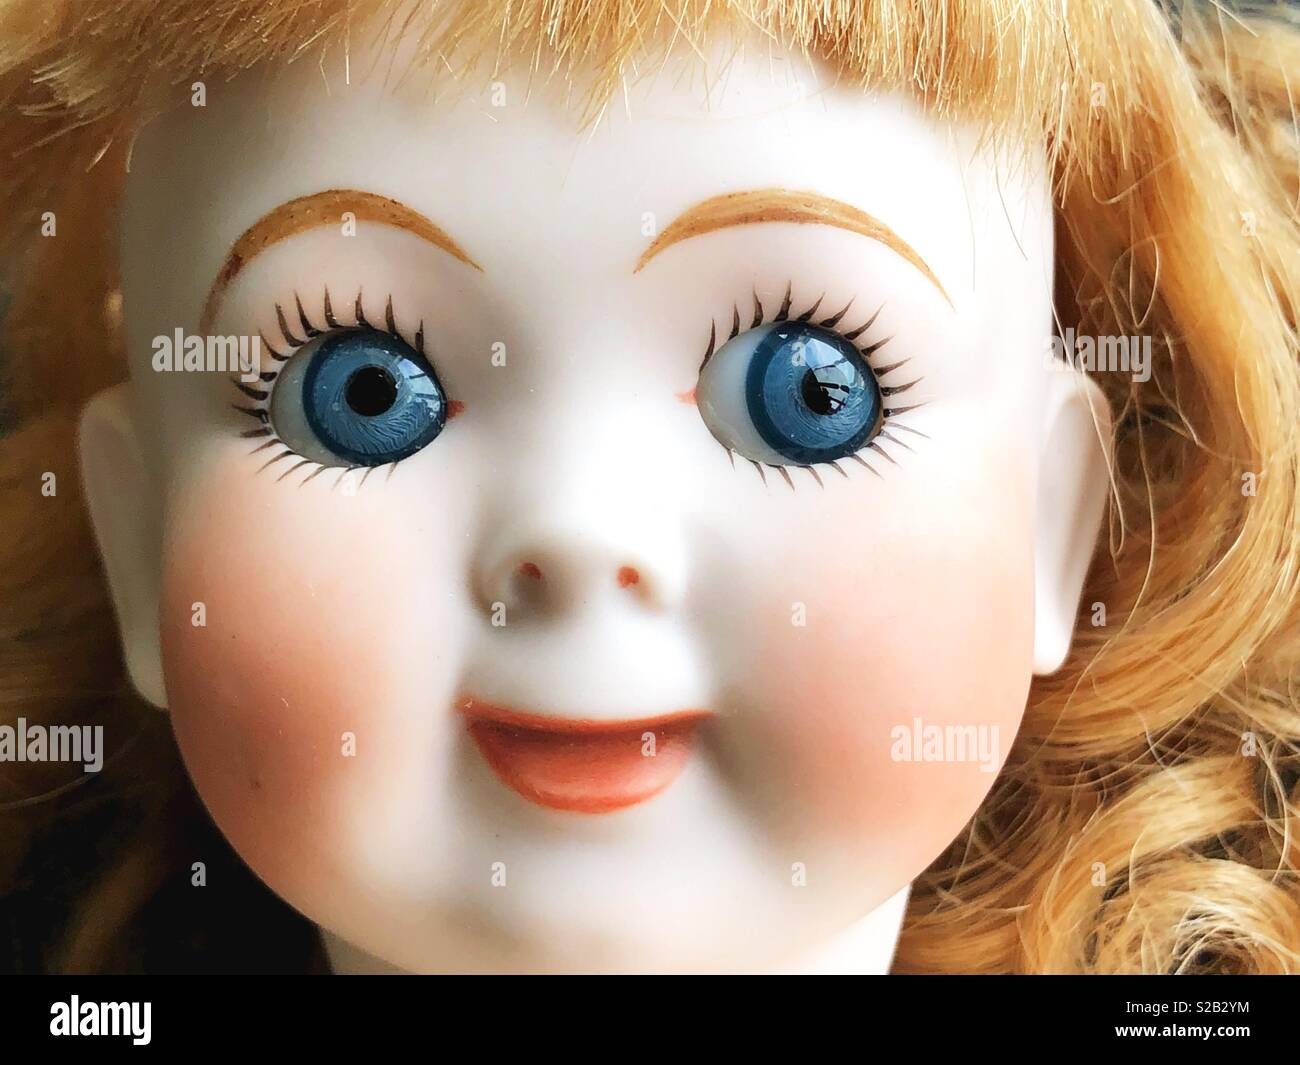 Close up of doll face. - Stock Image